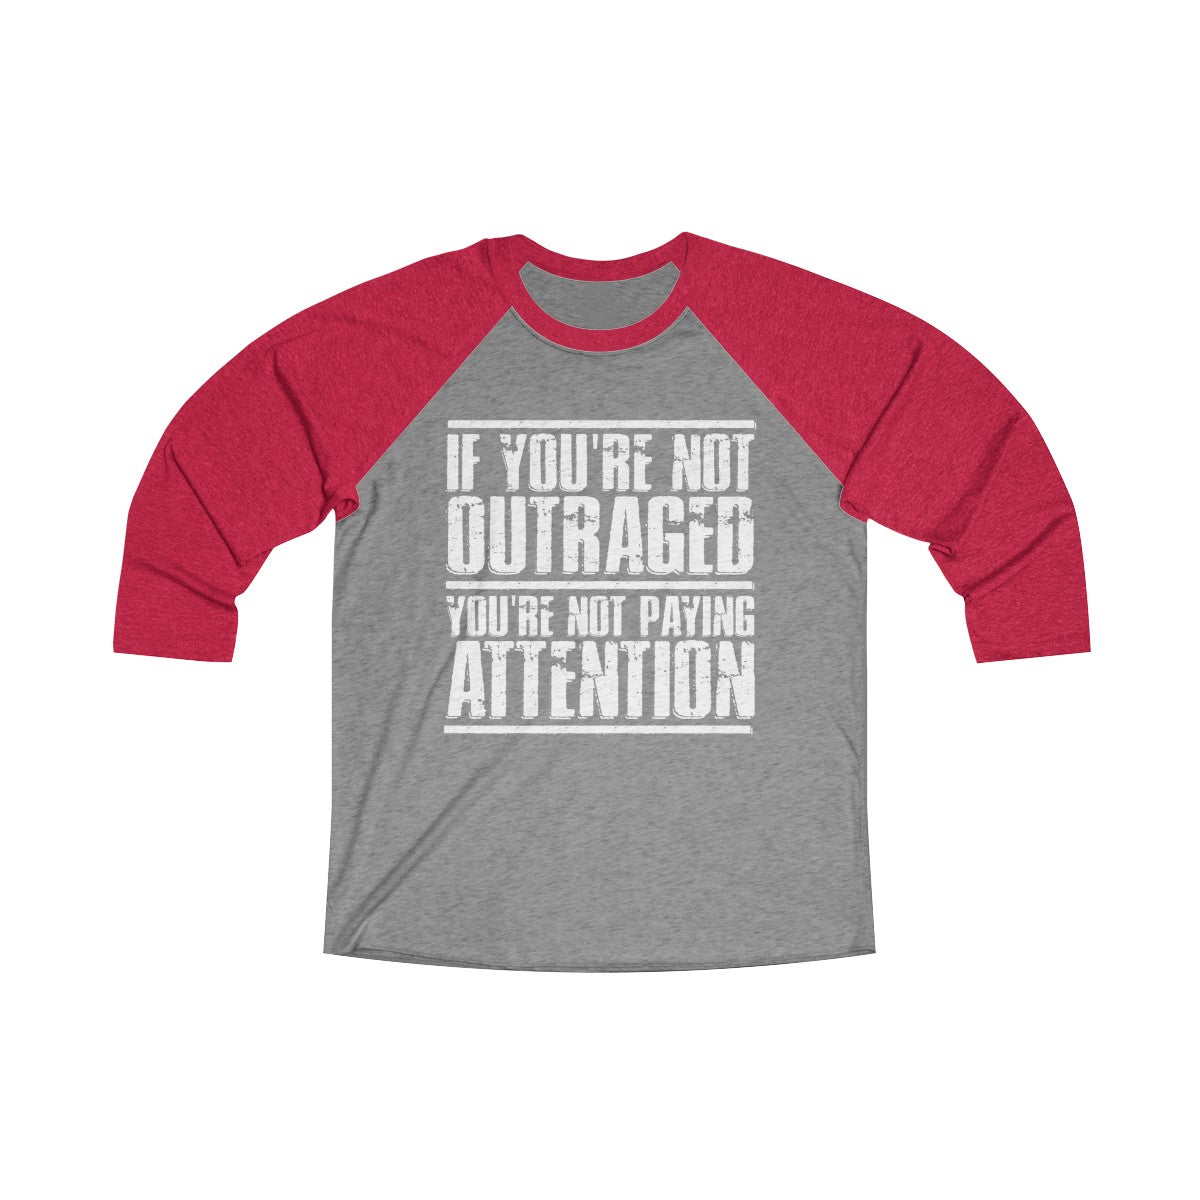 If You Are Not Outraged 3/4 Raglan Tee